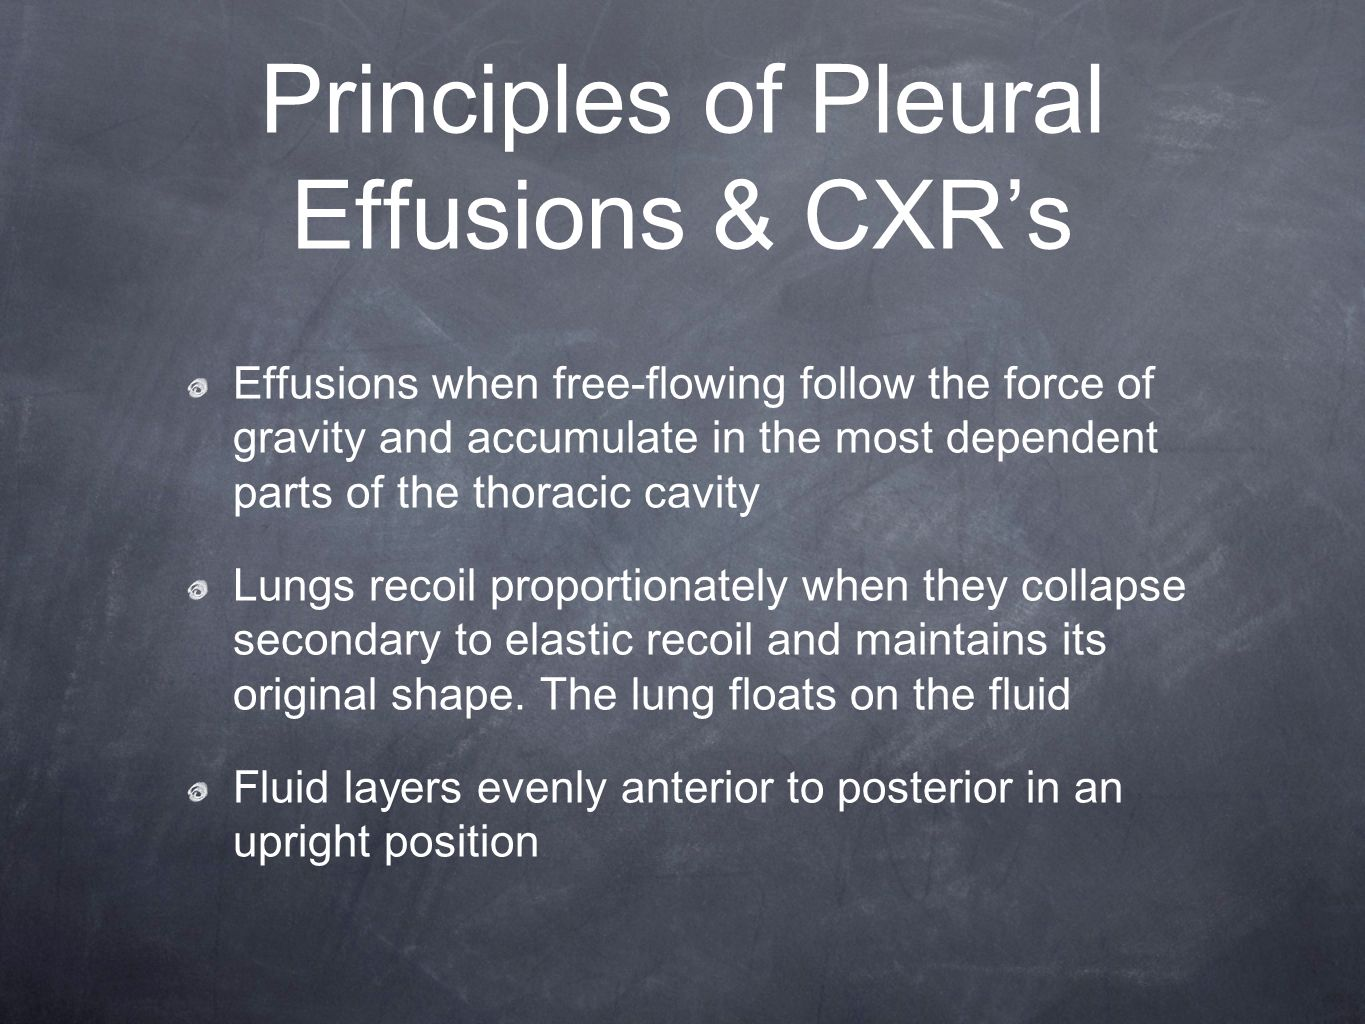 Principles of Pleural Effusions & CXR's